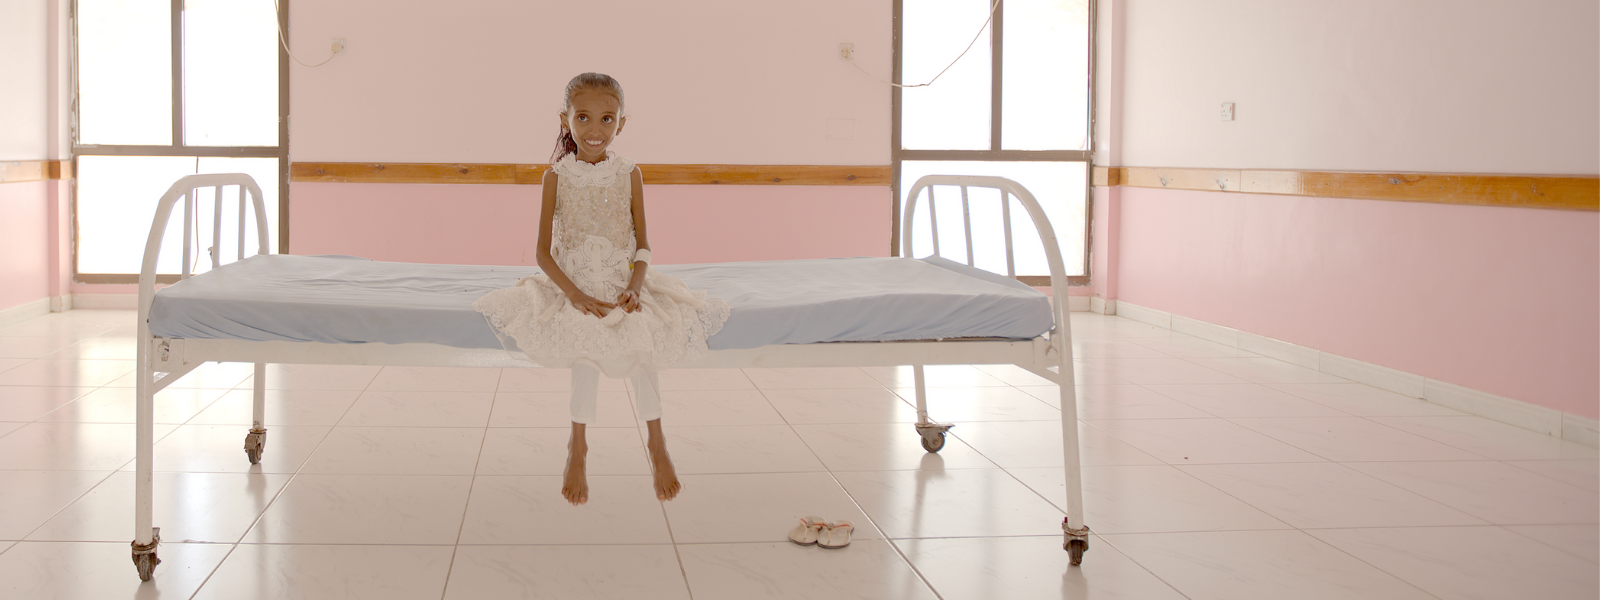 Support Yemeni Health Care Workers featured in Hunger Ward image